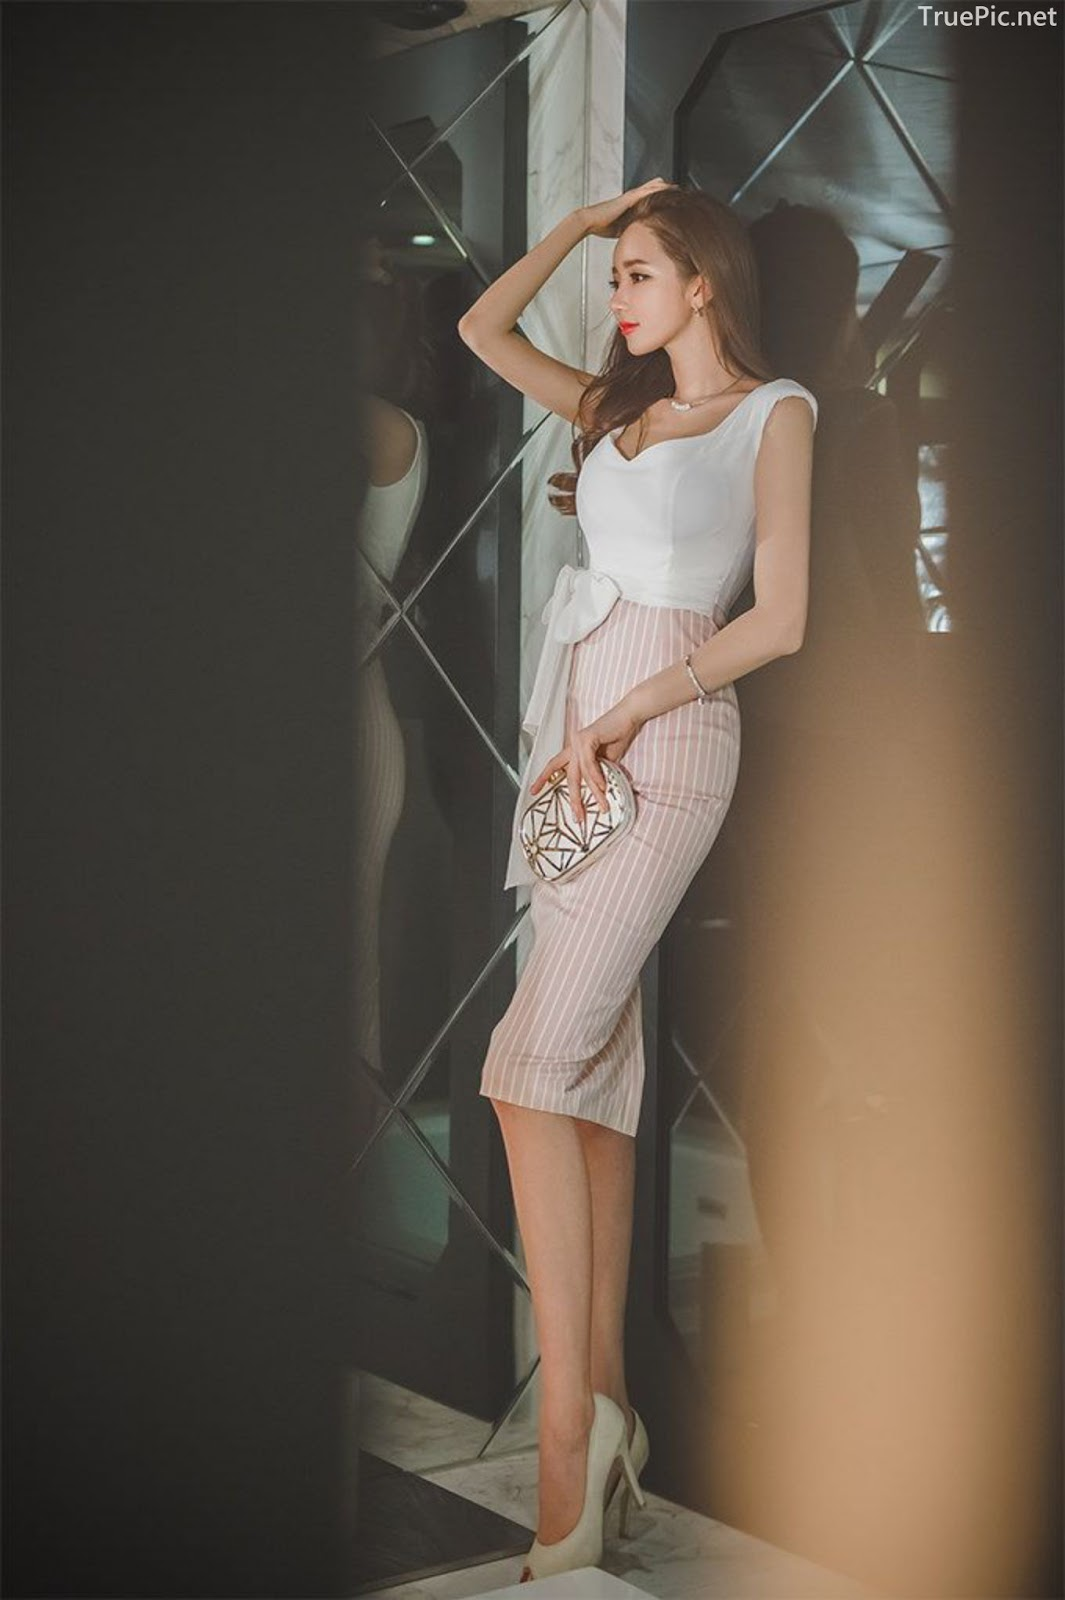 Lee Yeon Jeong - Indoor Photoshoot Collection - Korean fashion model - Part 1 - Picture 2